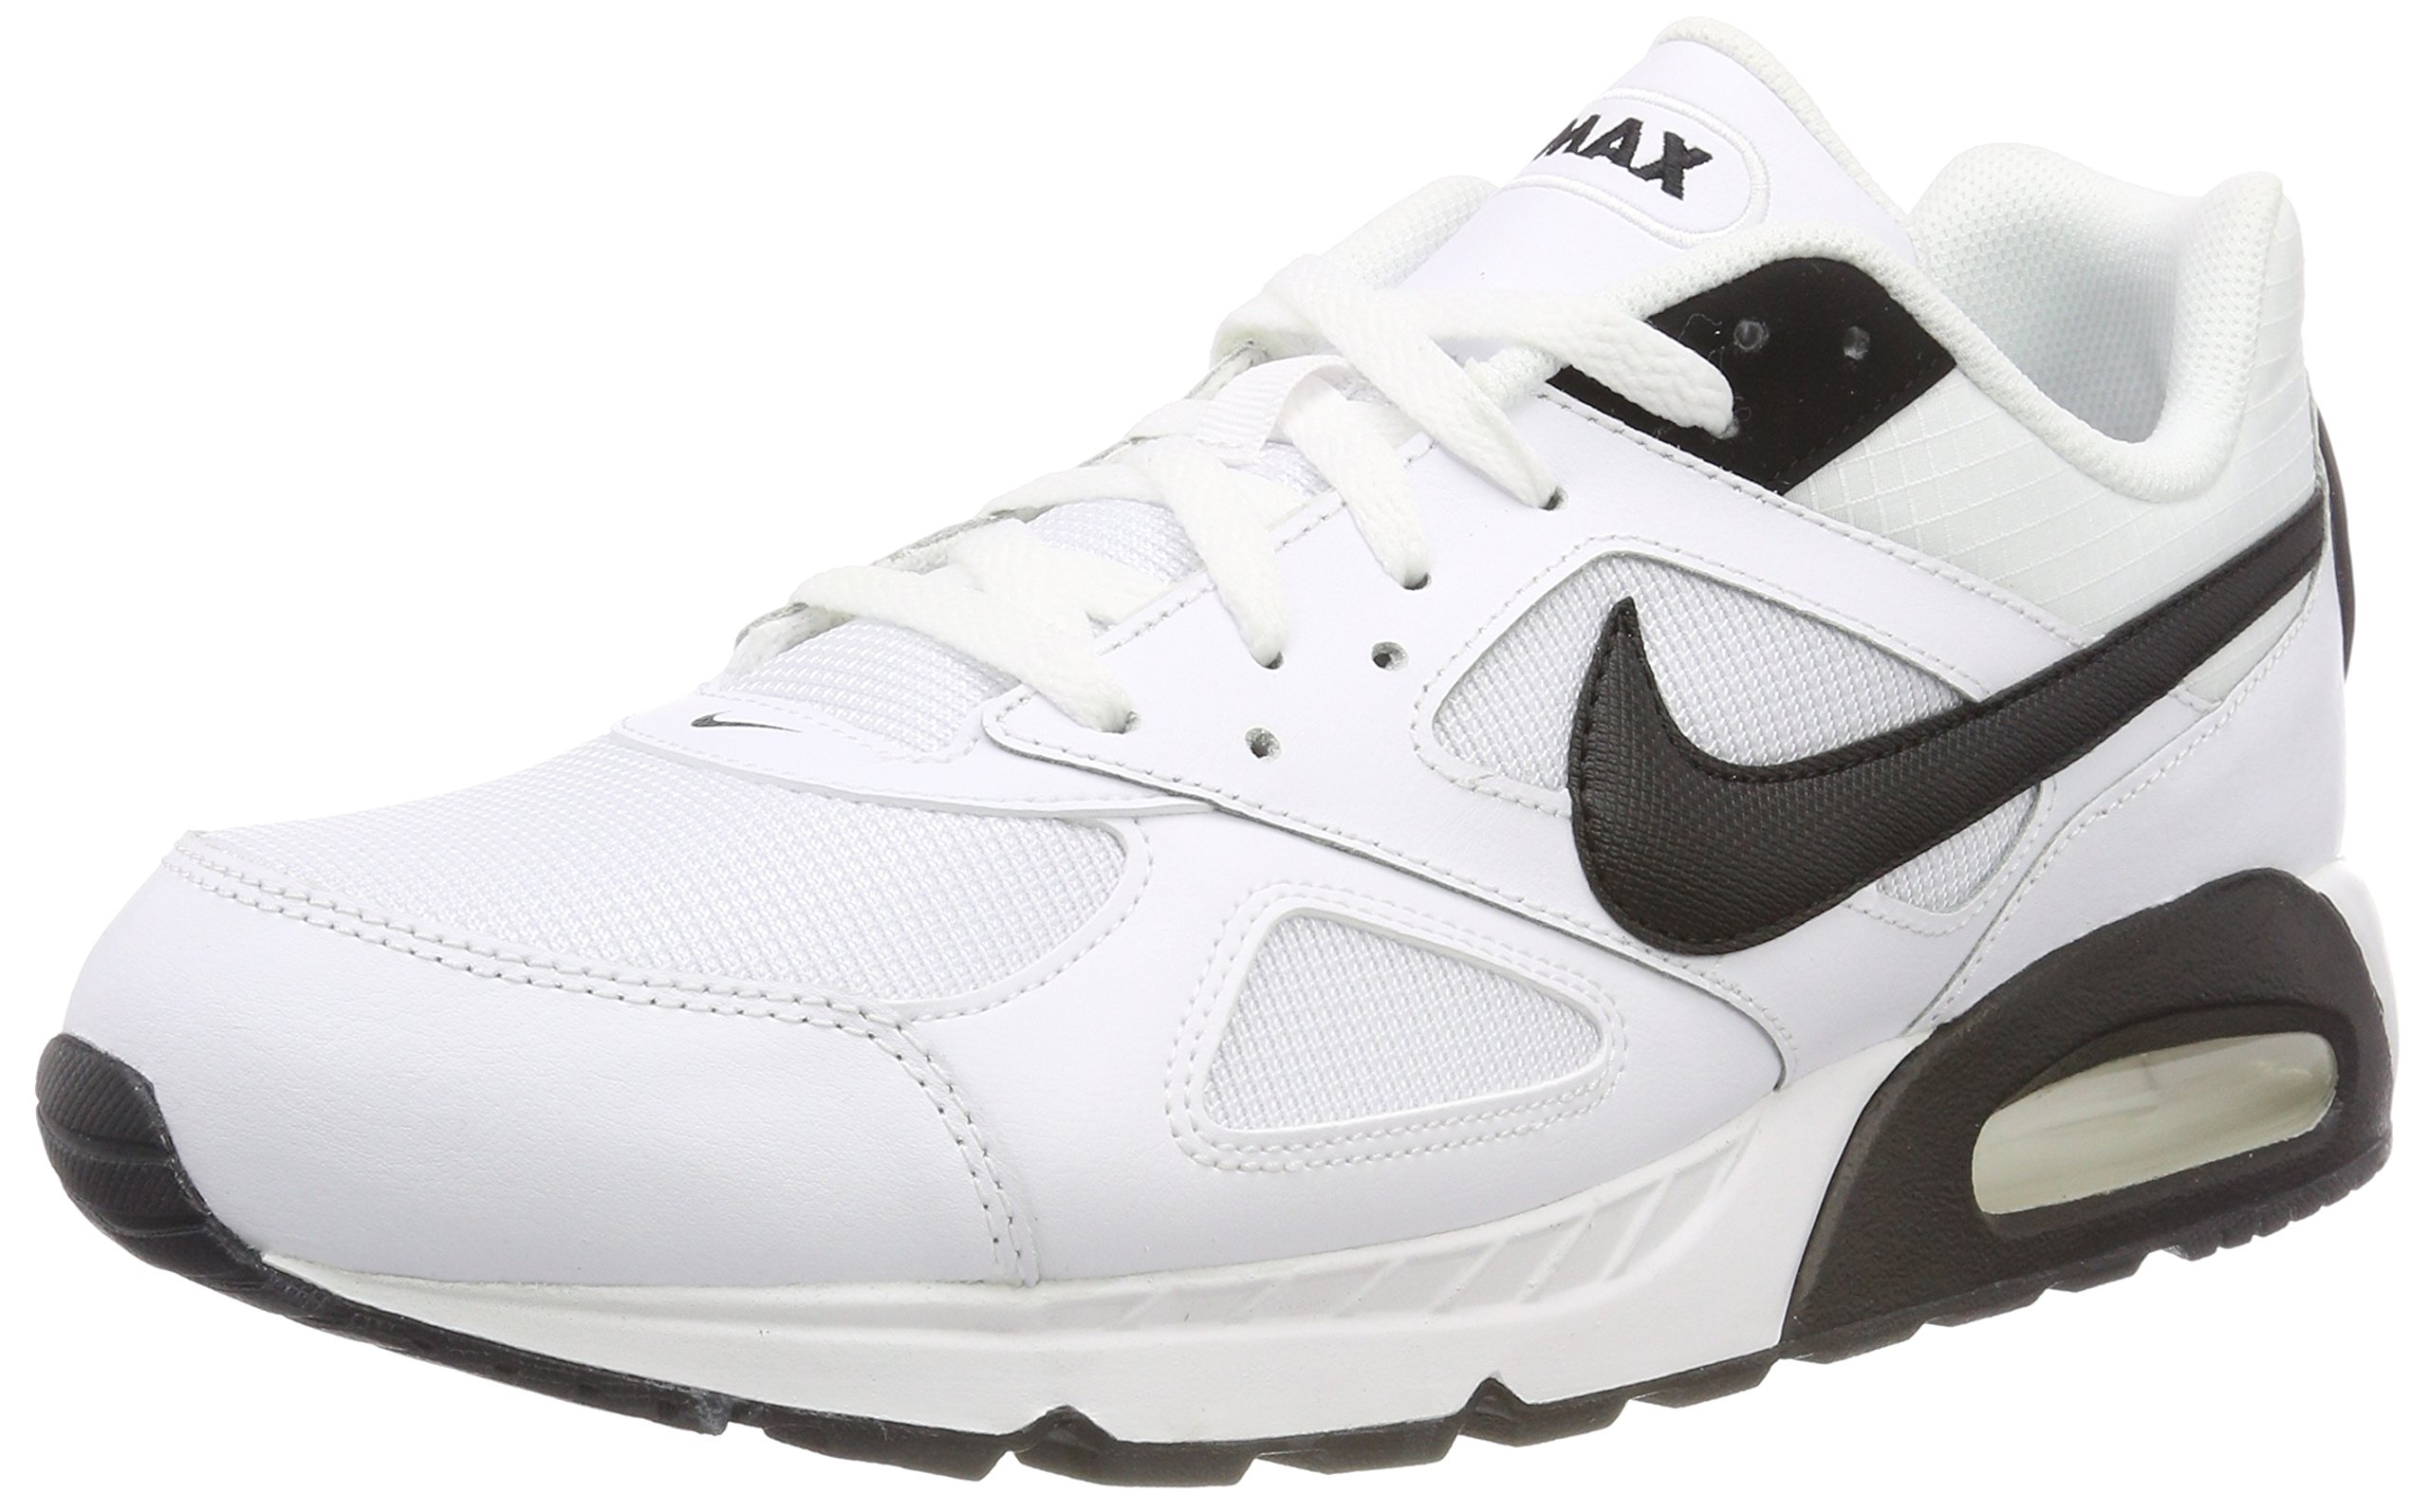 Galleon - NIKE Air Max Ivo Mens Running Trainers 580518 Sneakers Shoes (UK  7.5 US 8.5 EU 42 6519d8204